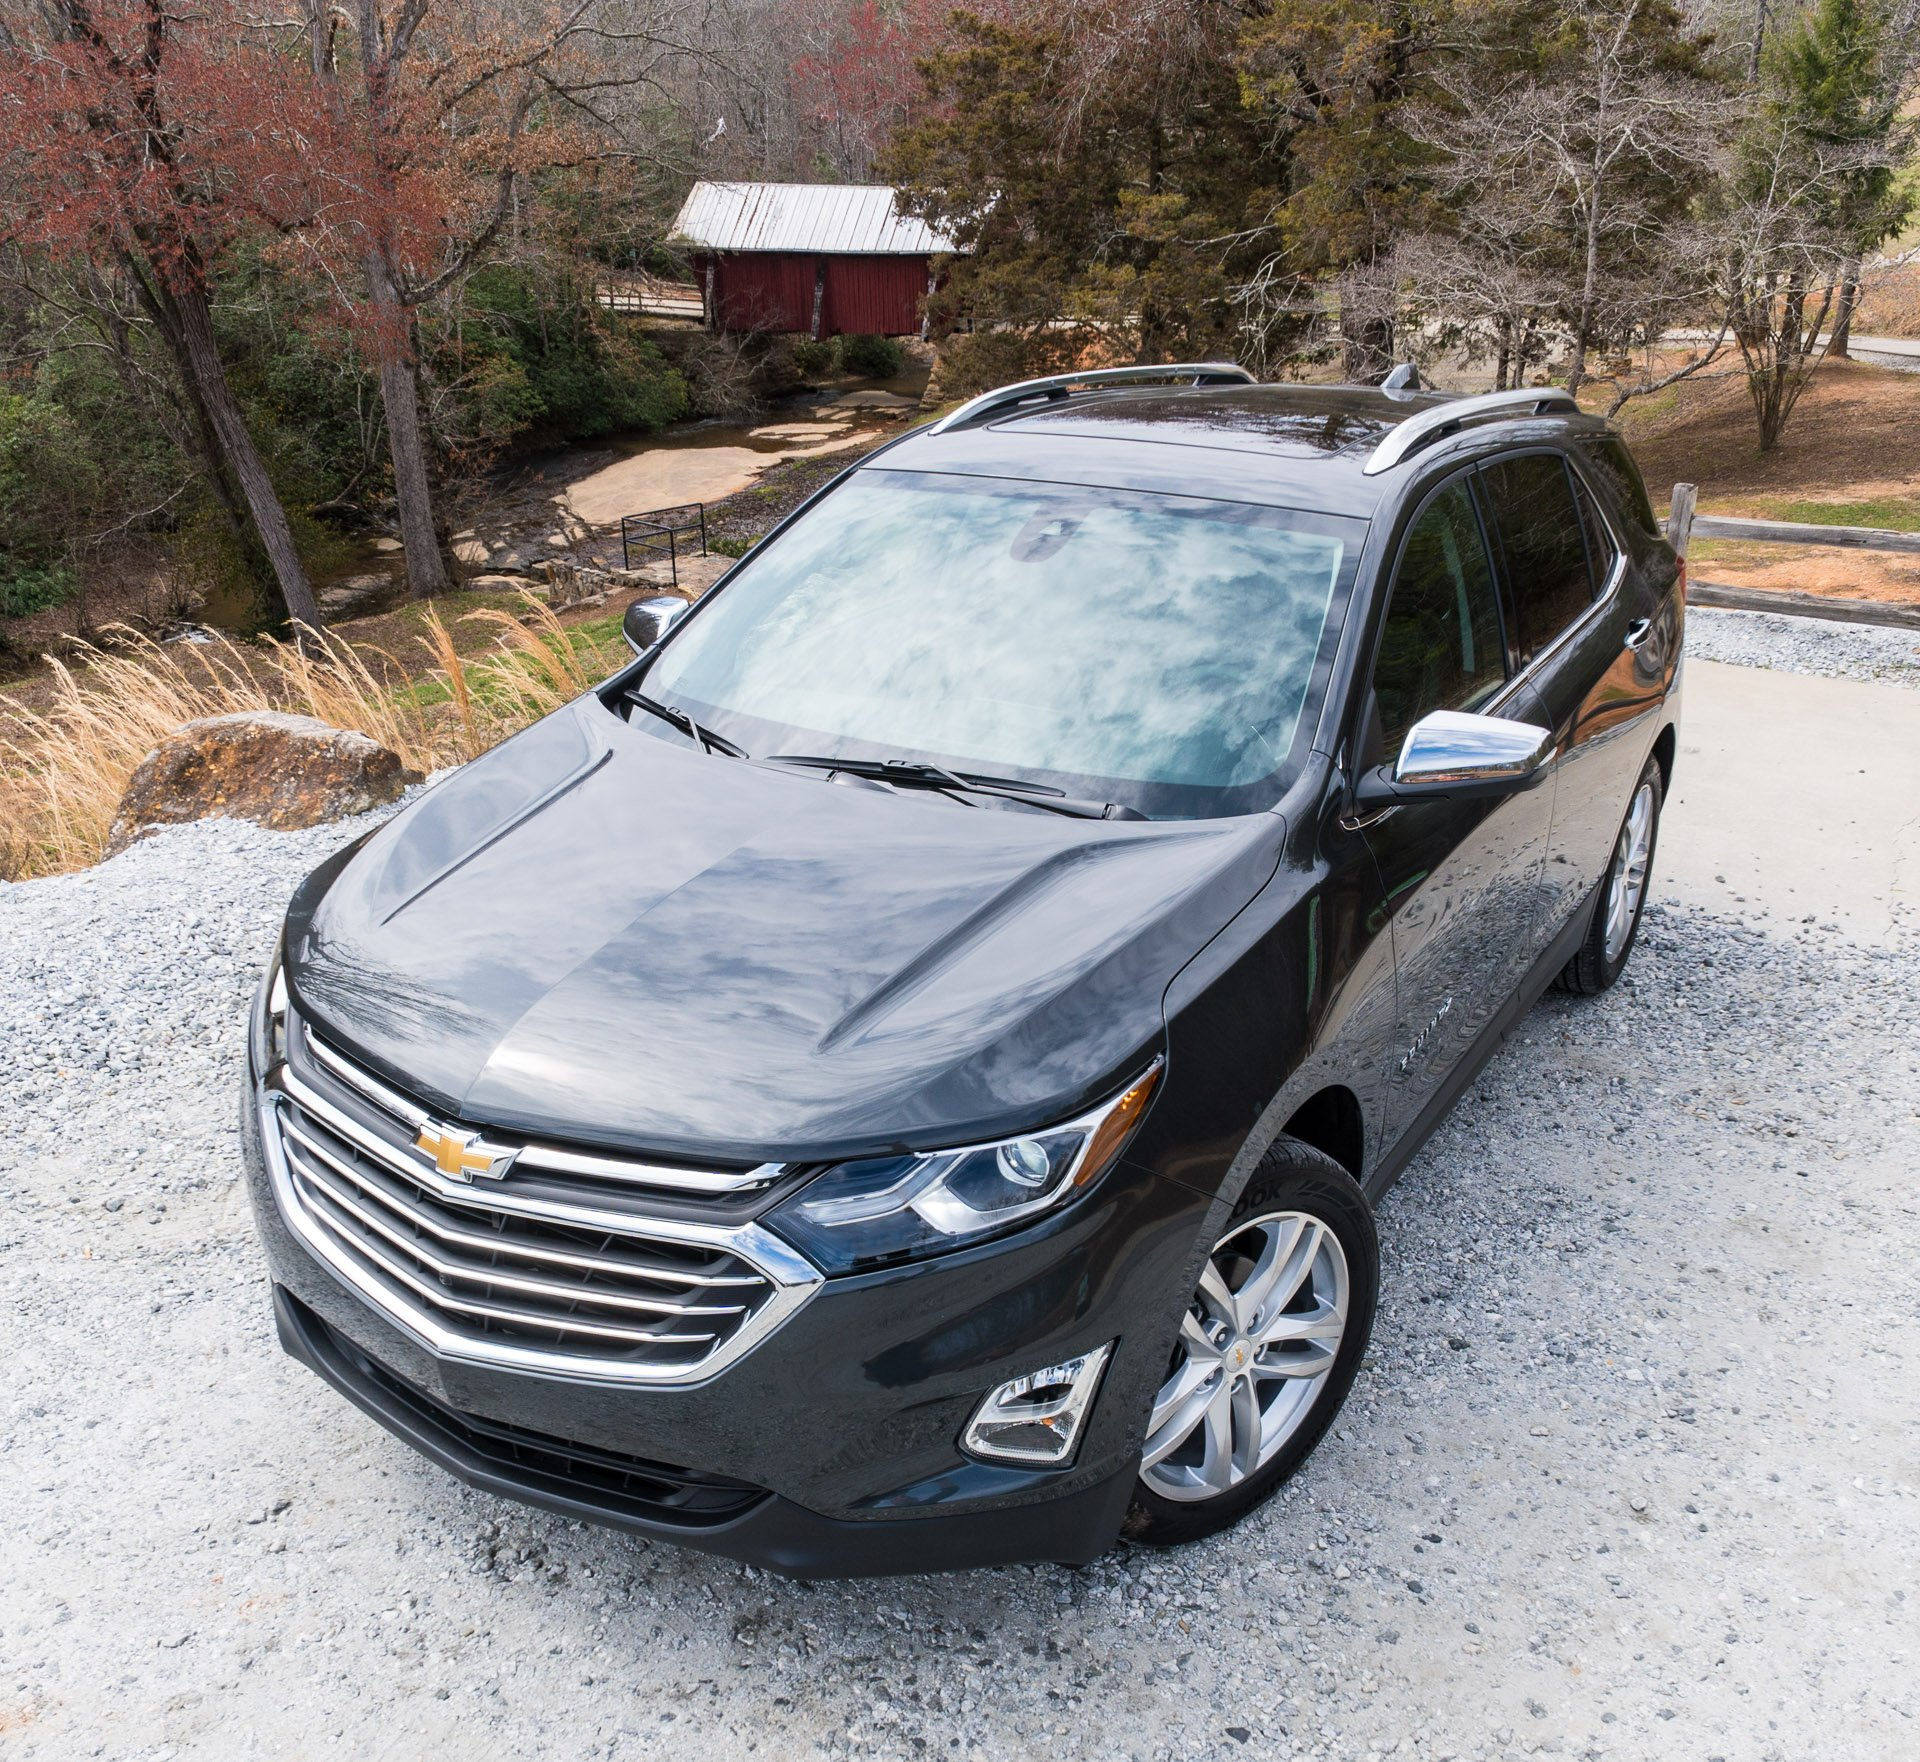 2018 Chevrolet Equinox Suspension: A Southern Roadtrip In The 2018 Chevrolet Equinox